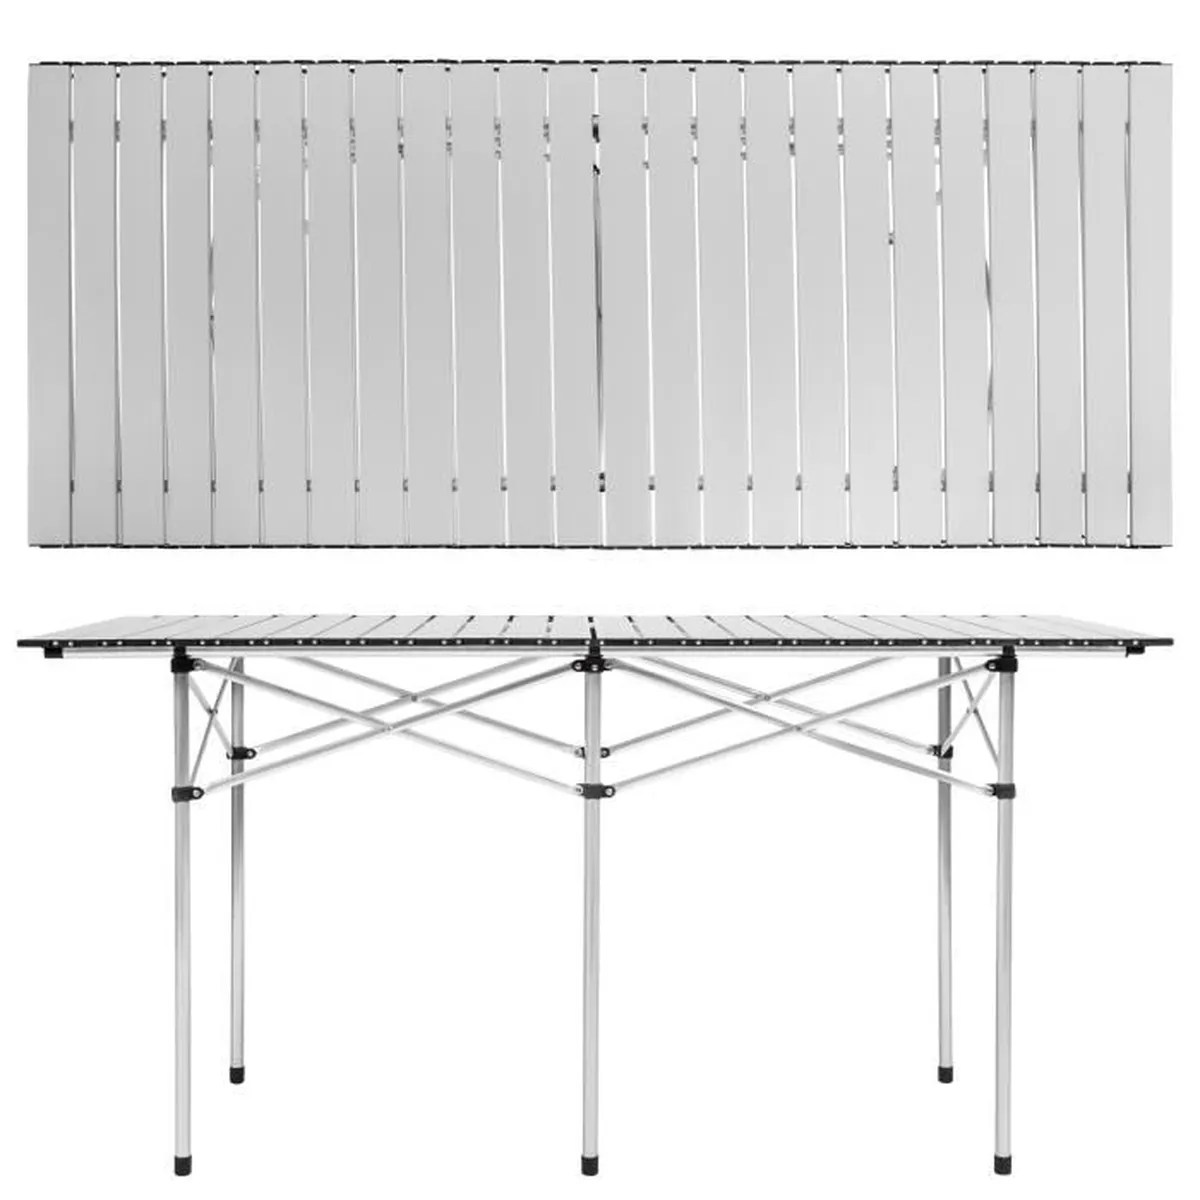 Table Valise + 4 Tabourets Tectake Table Pliante De Camping 4 à 6 Places 140 Cm X 70 Cm X 70 Cm En Aluminium Sac De Transport